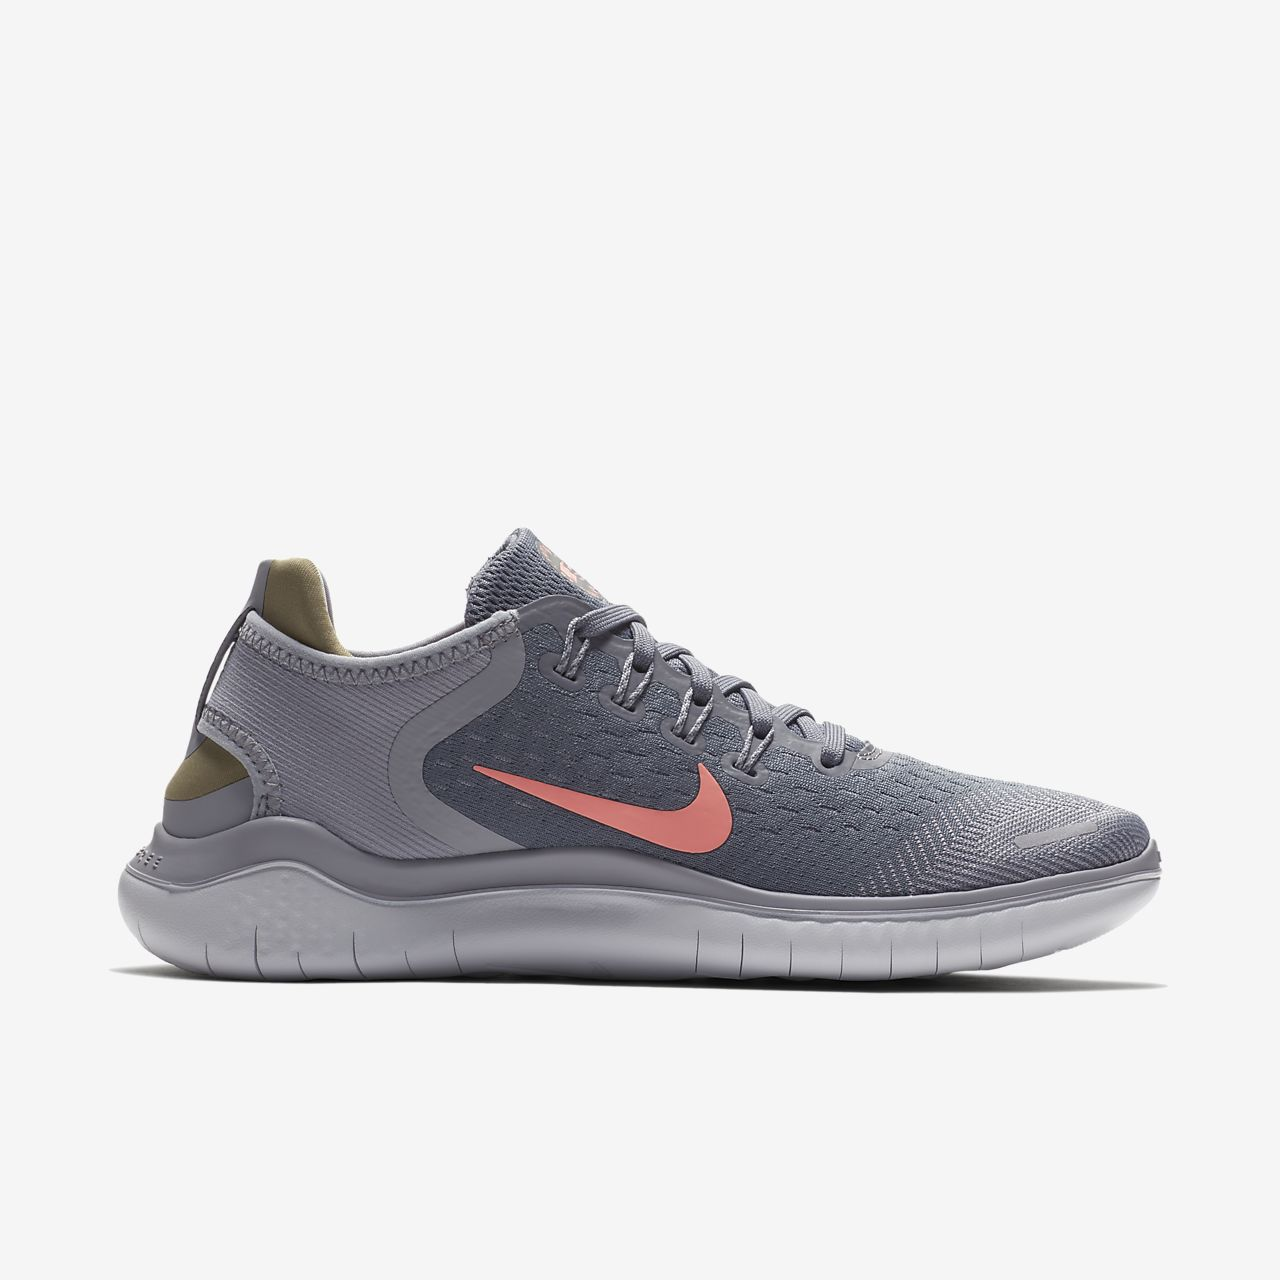 free shipping pick a best clearance store sale online Women's Nike Flex Run 2018 Running Shoes free shipping clearance outlet footlocker finishline ouk2kZ8Pj